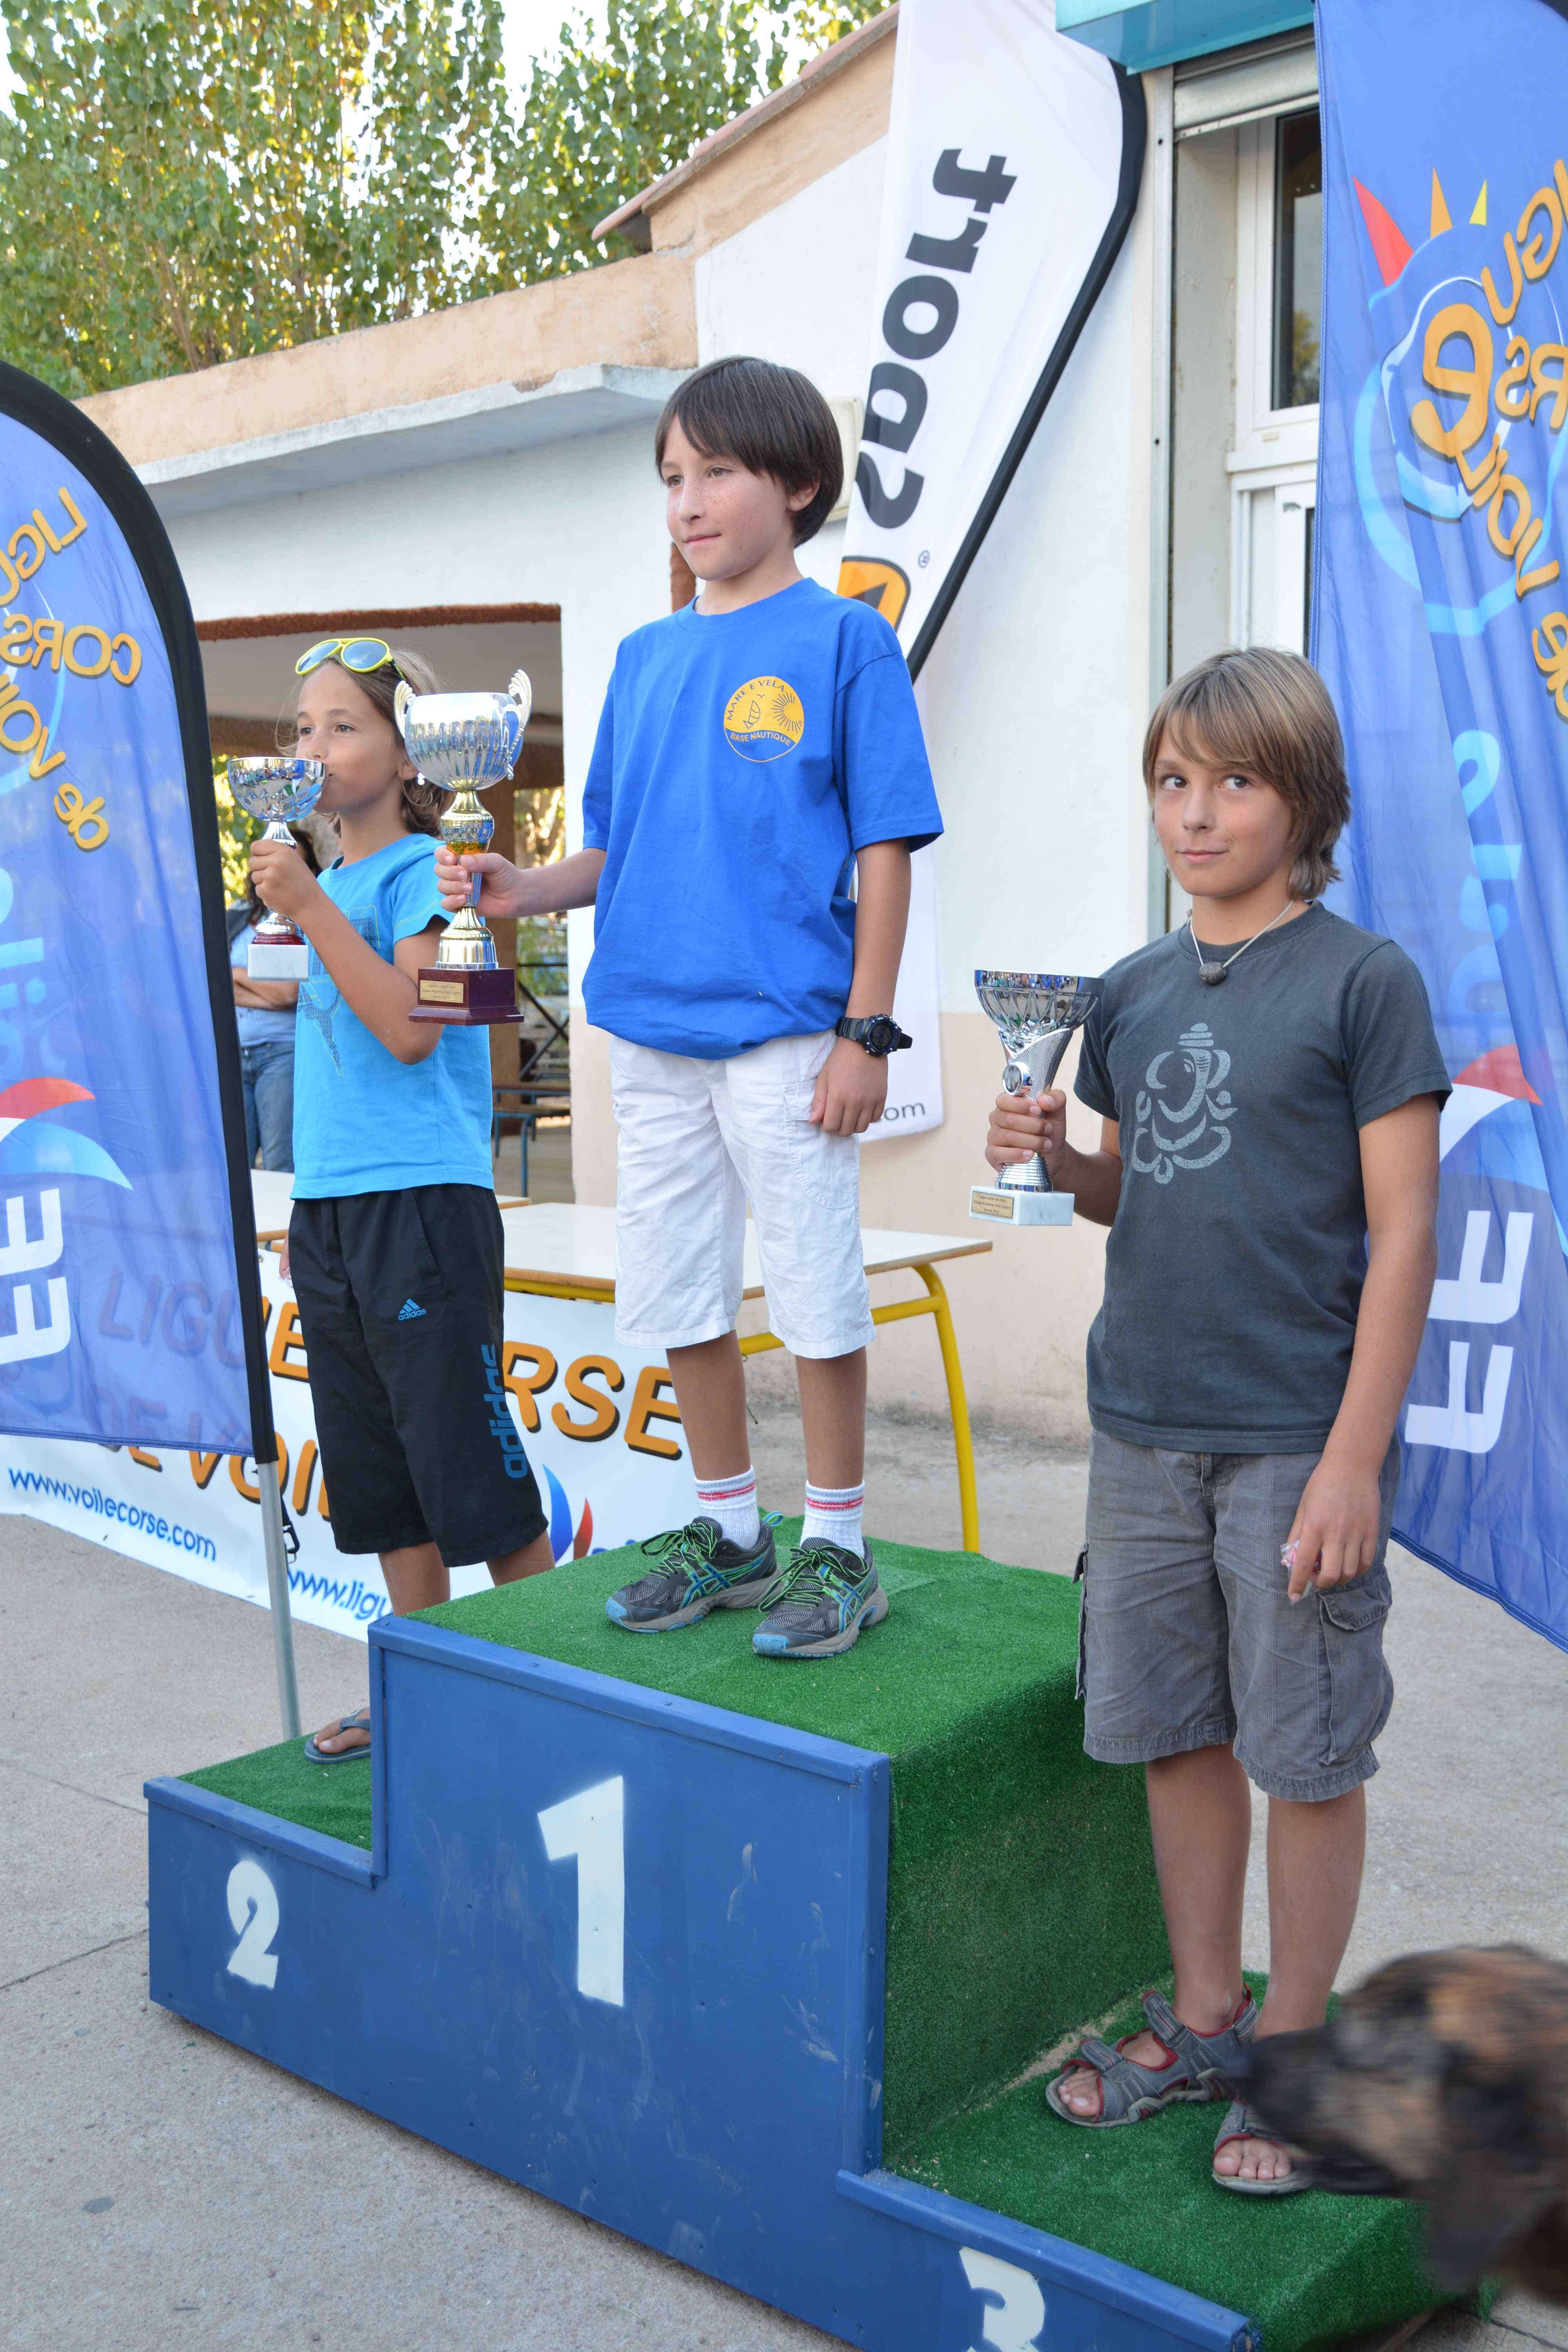 Podium optimist coupe d'automne